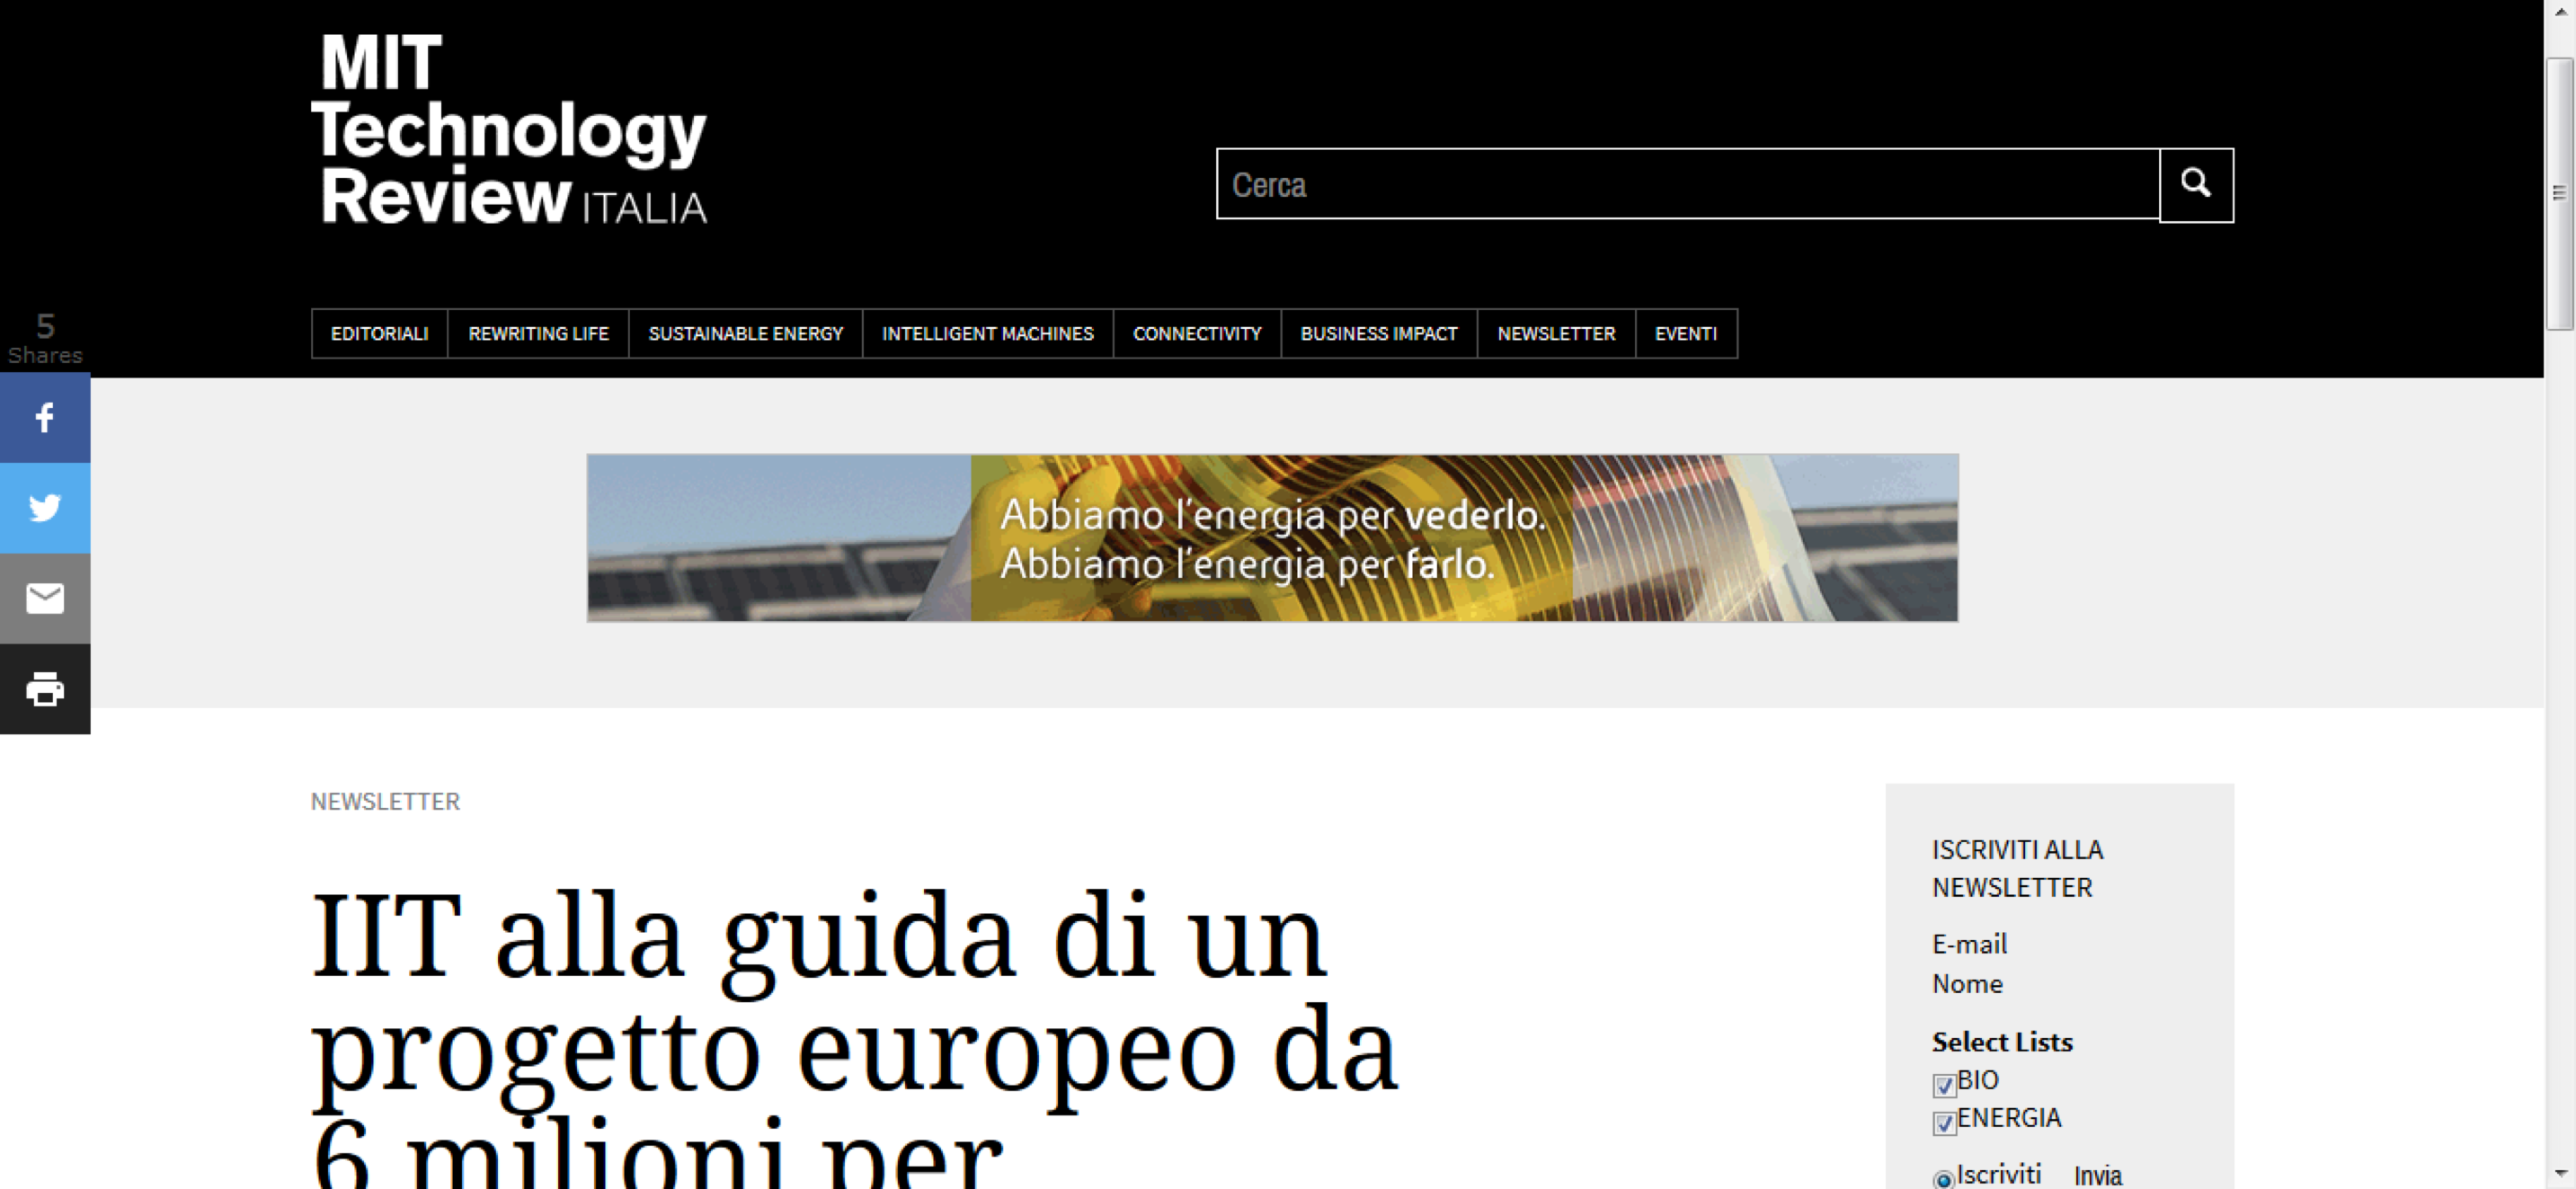 minded-press-review-mit-technology-review-italia